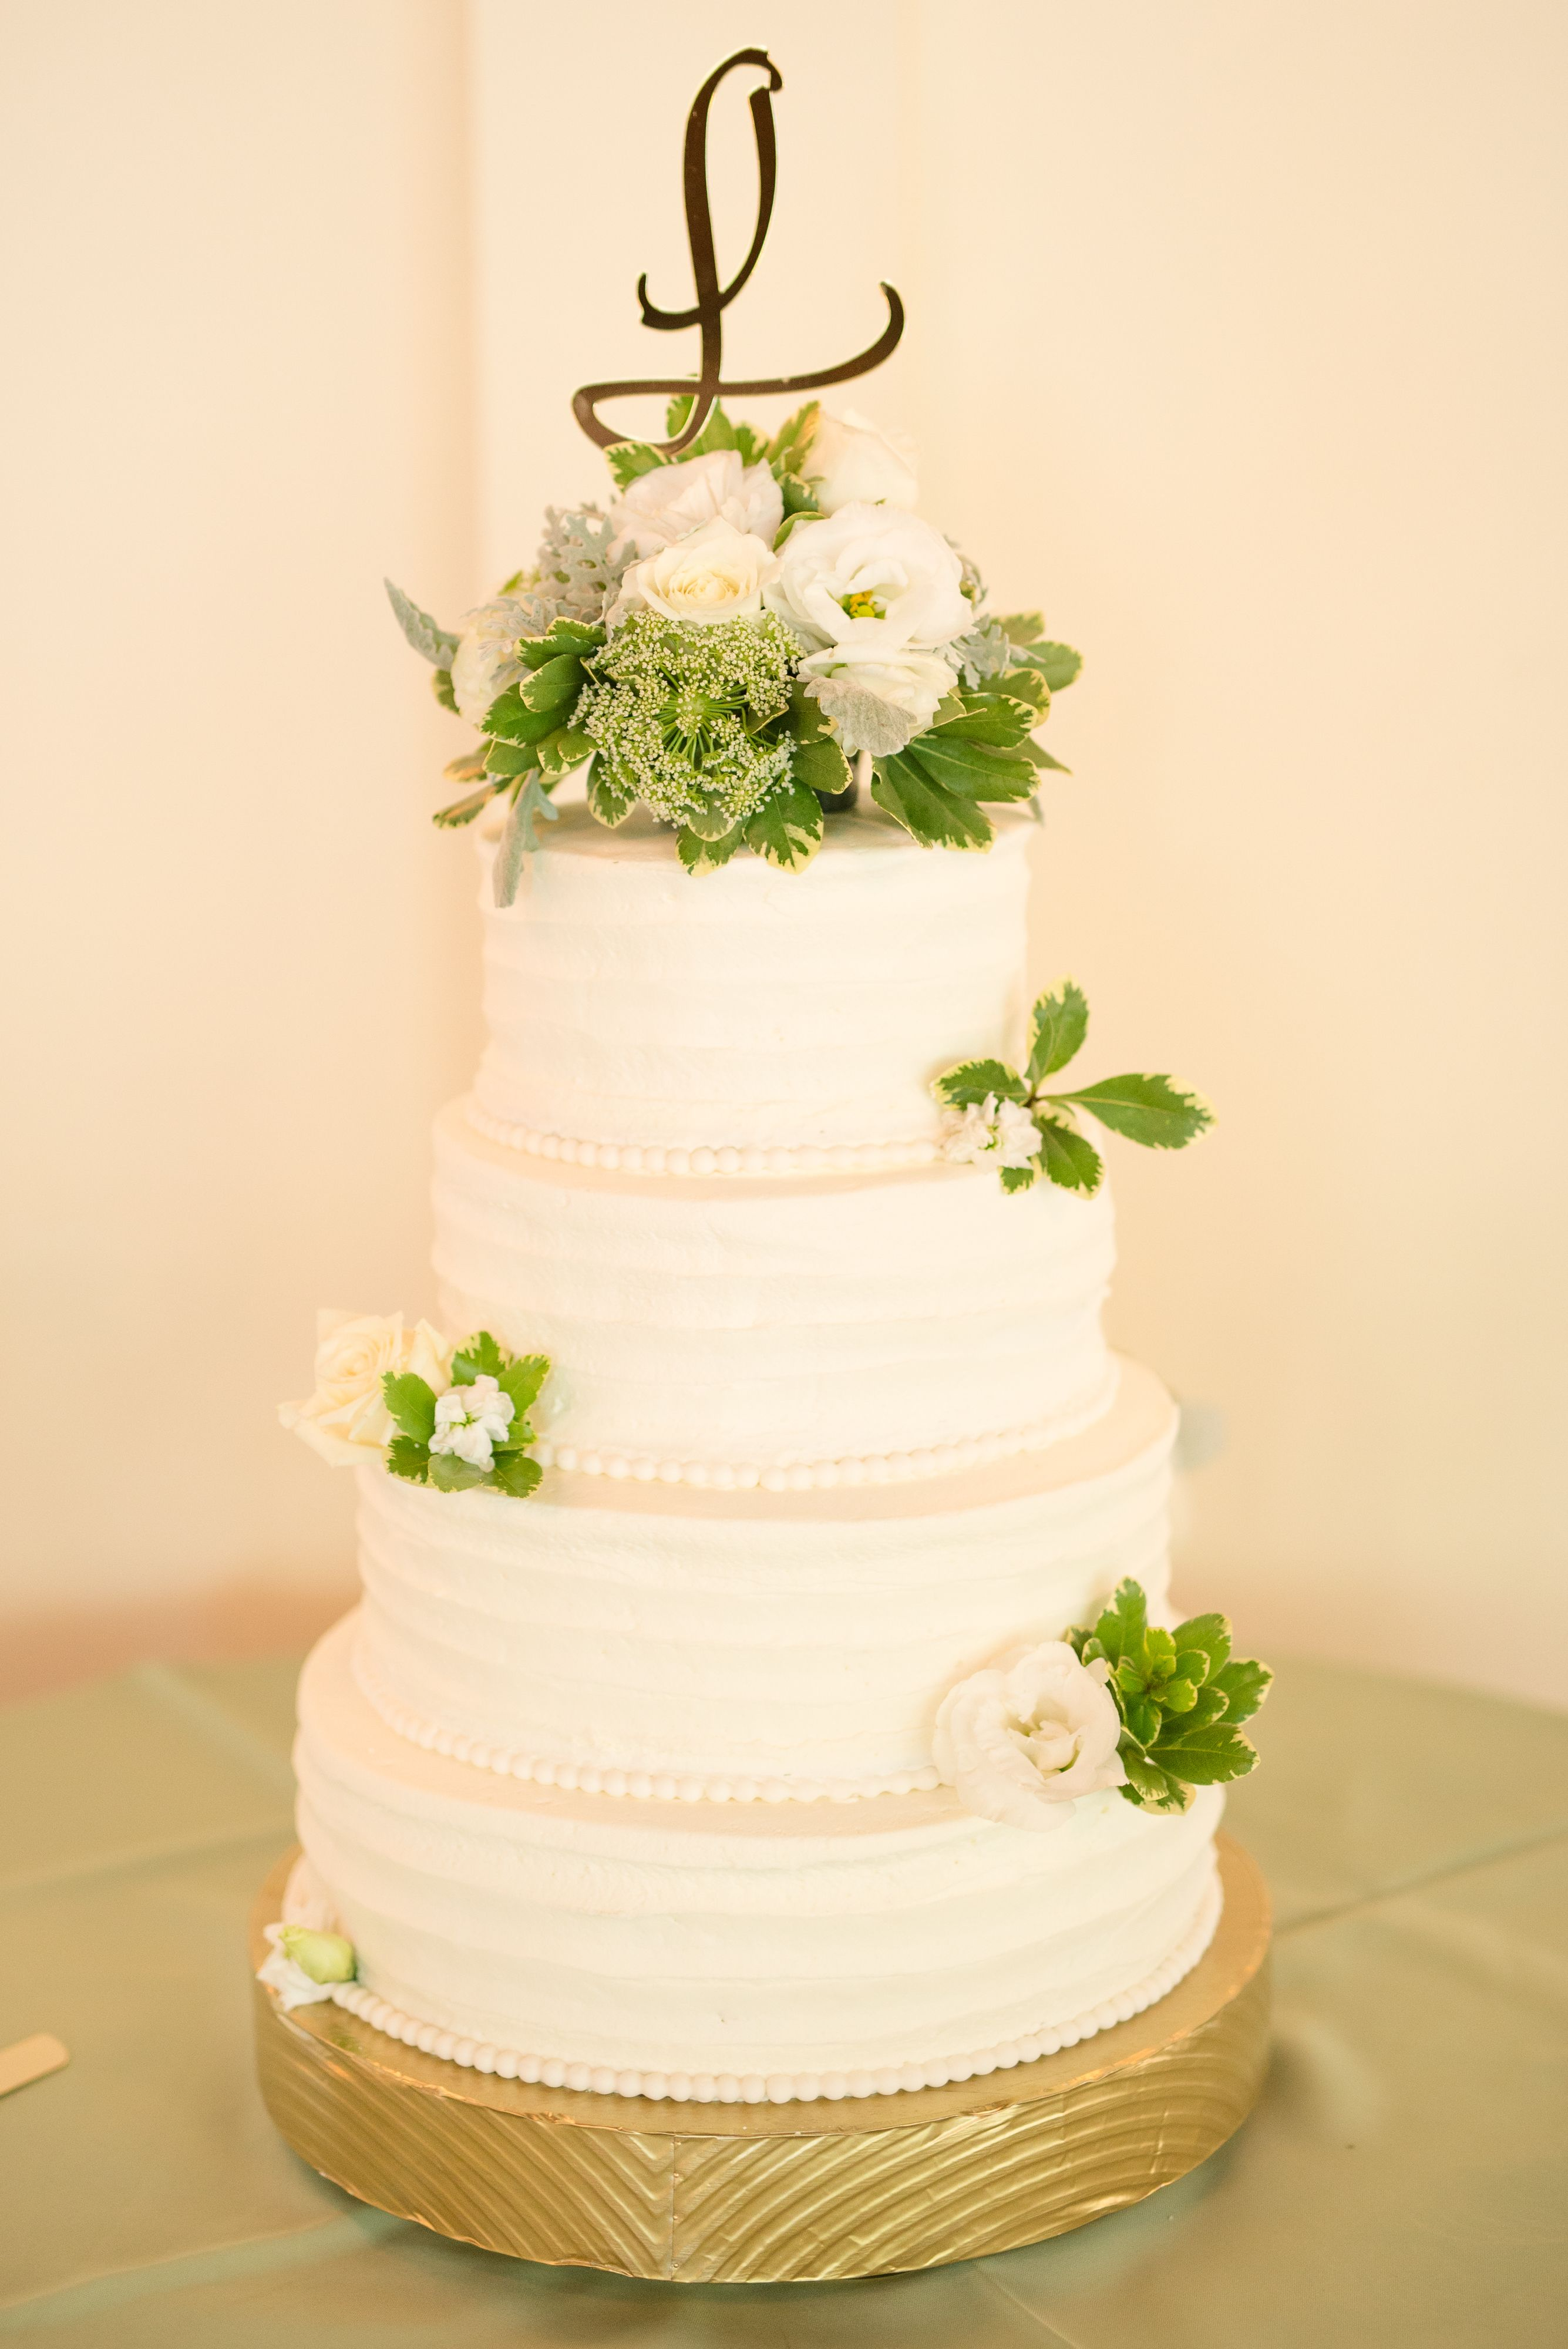 White Four Tiered Wedding Cake With Fresh Flowers And Greenery